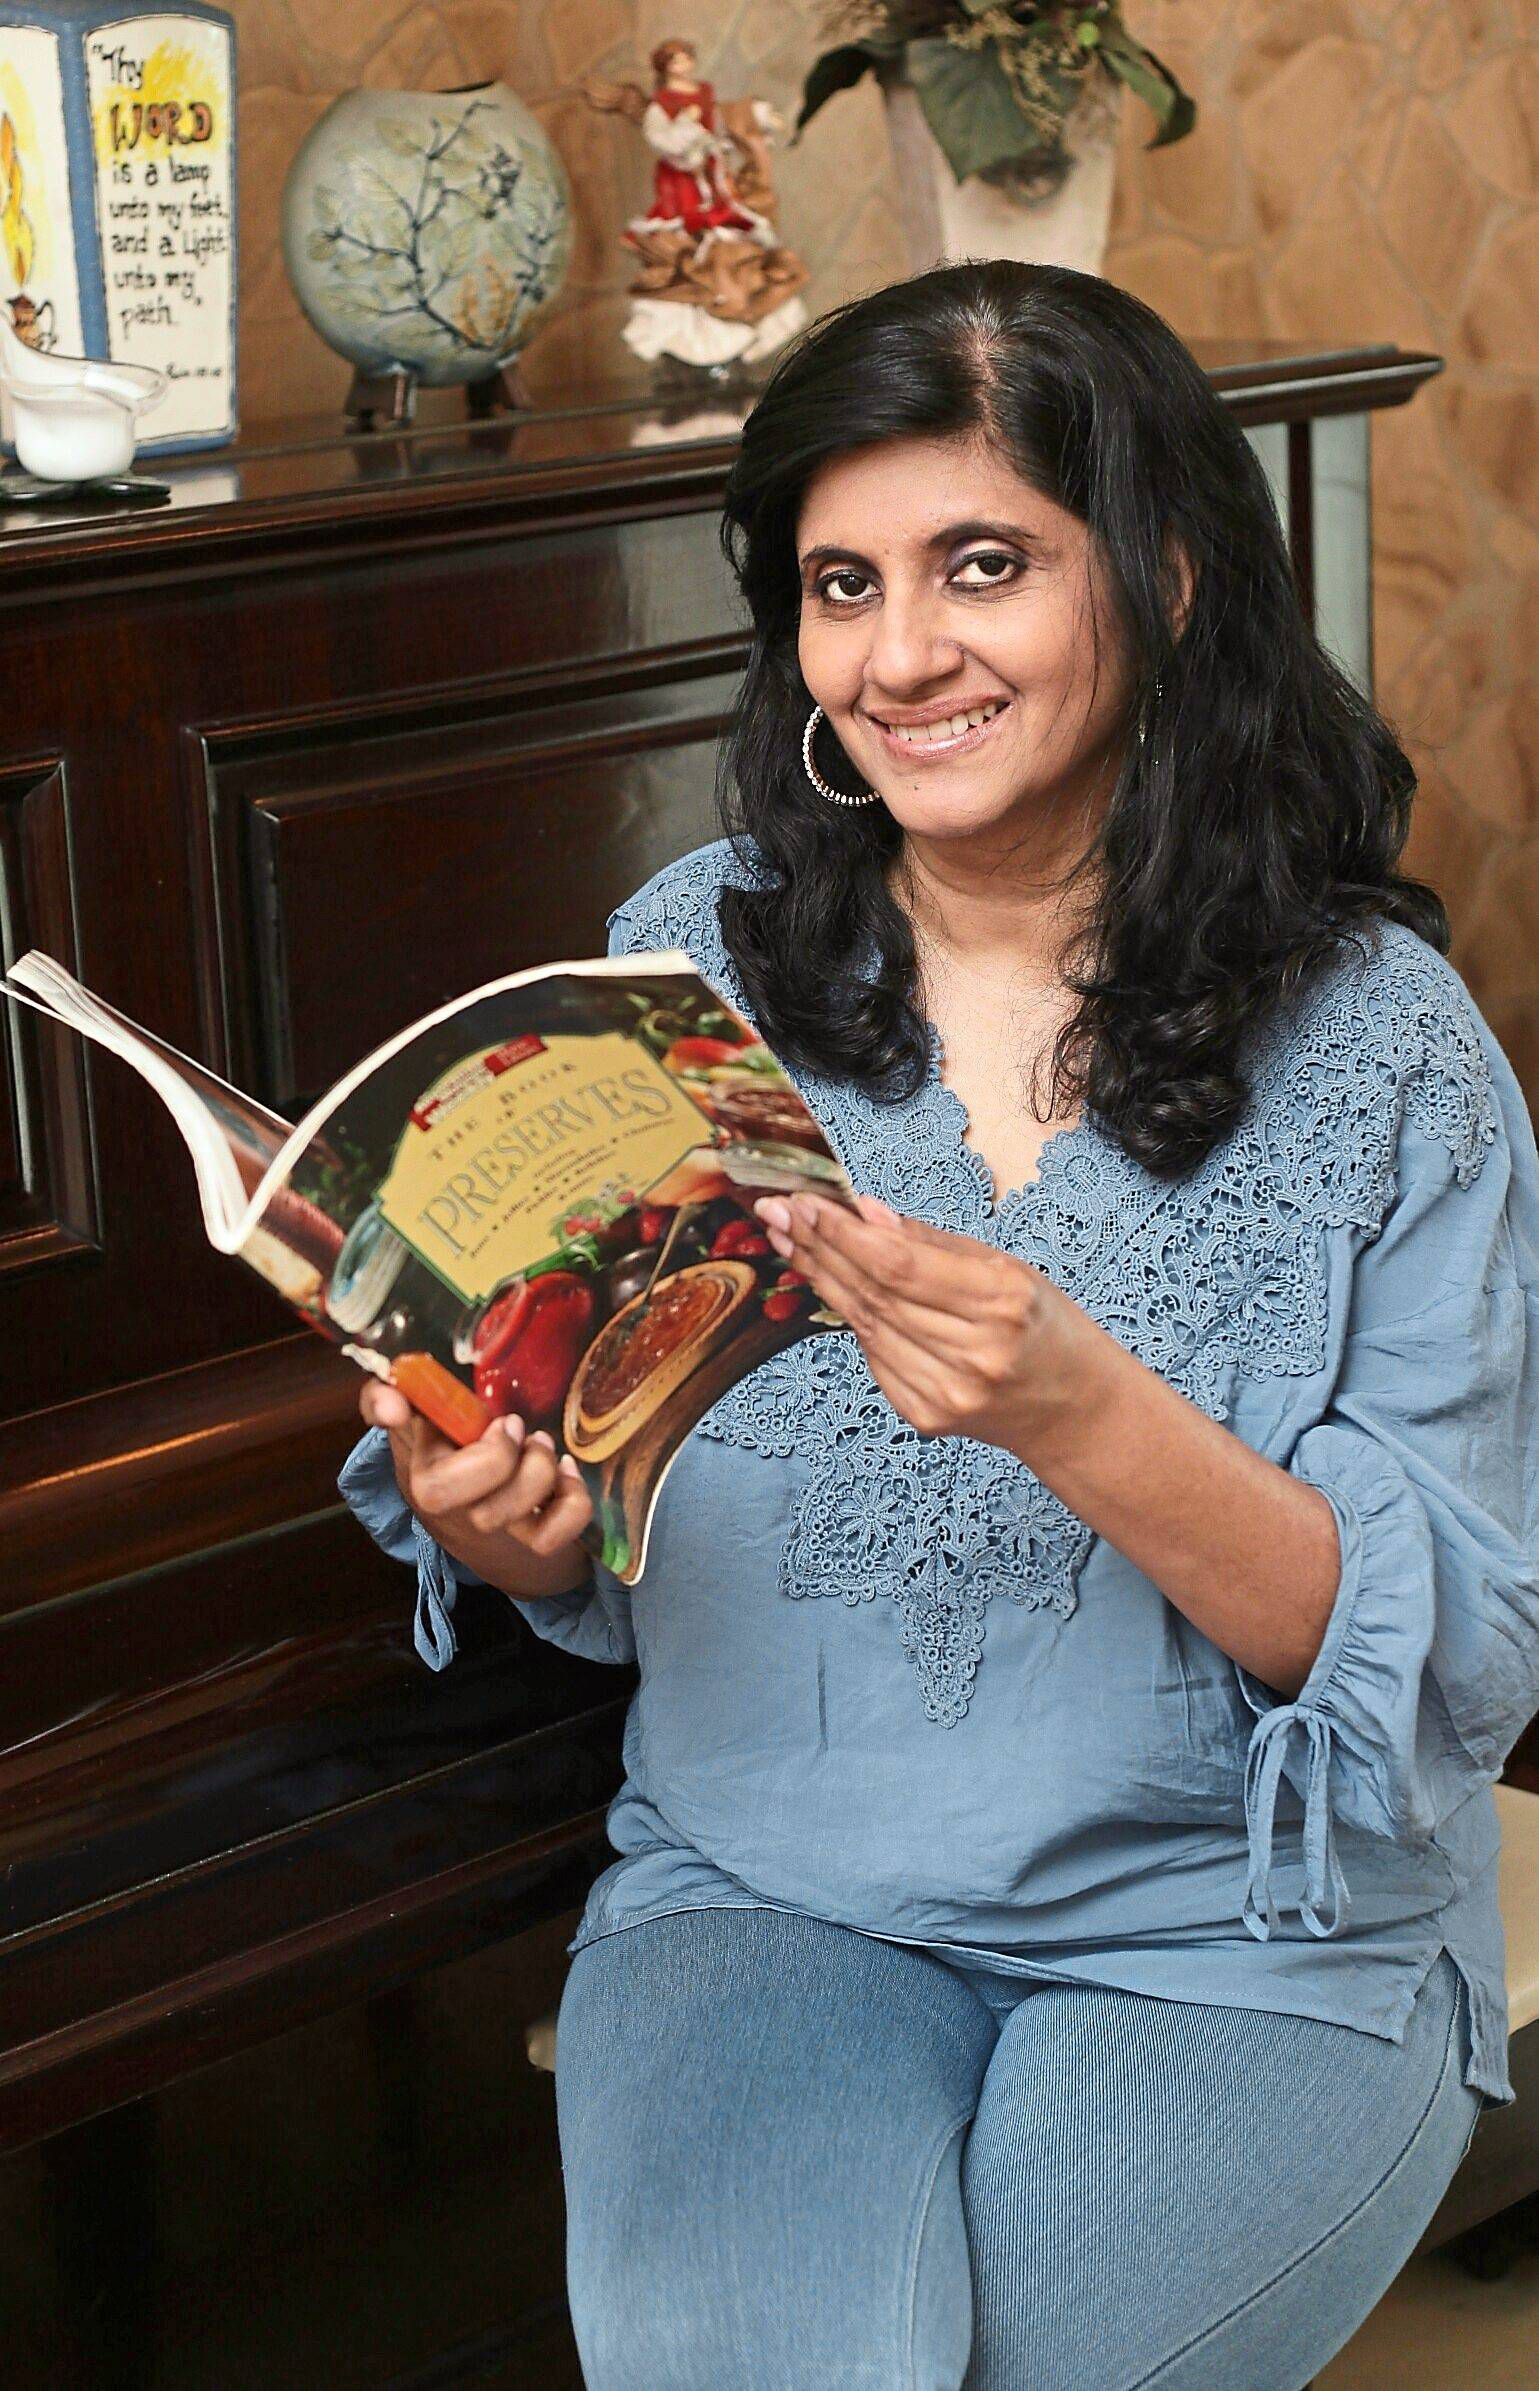 Pam perusing the recipe book that propelled her into making jams. — Photos: AZMAN GHANI/The Star